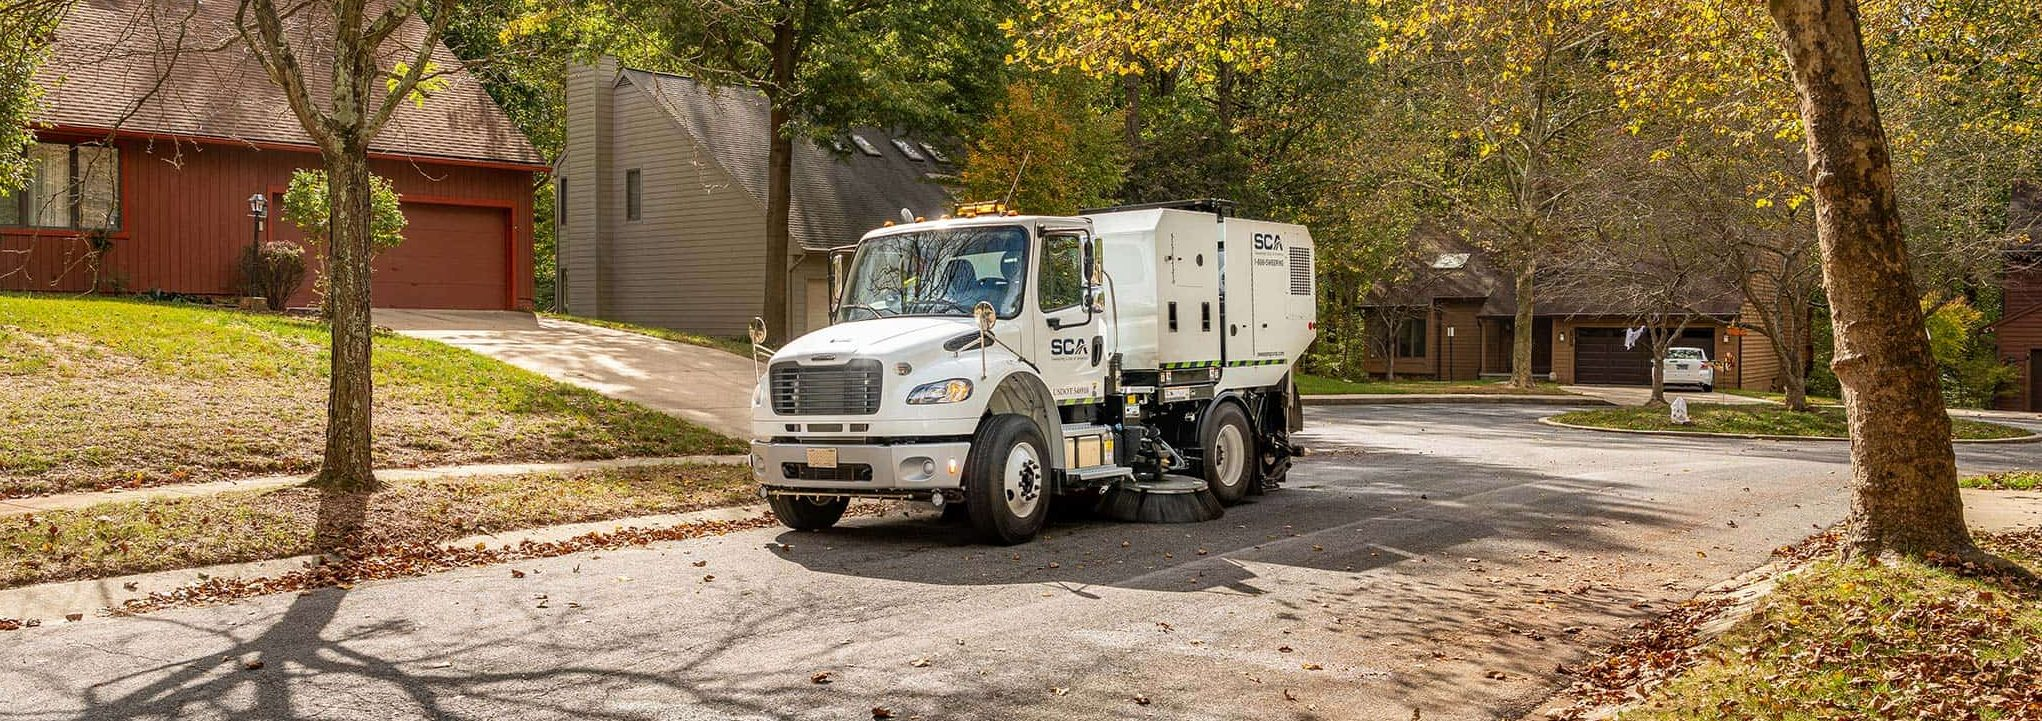 A sweeping truck cleaning a residential neighborhood